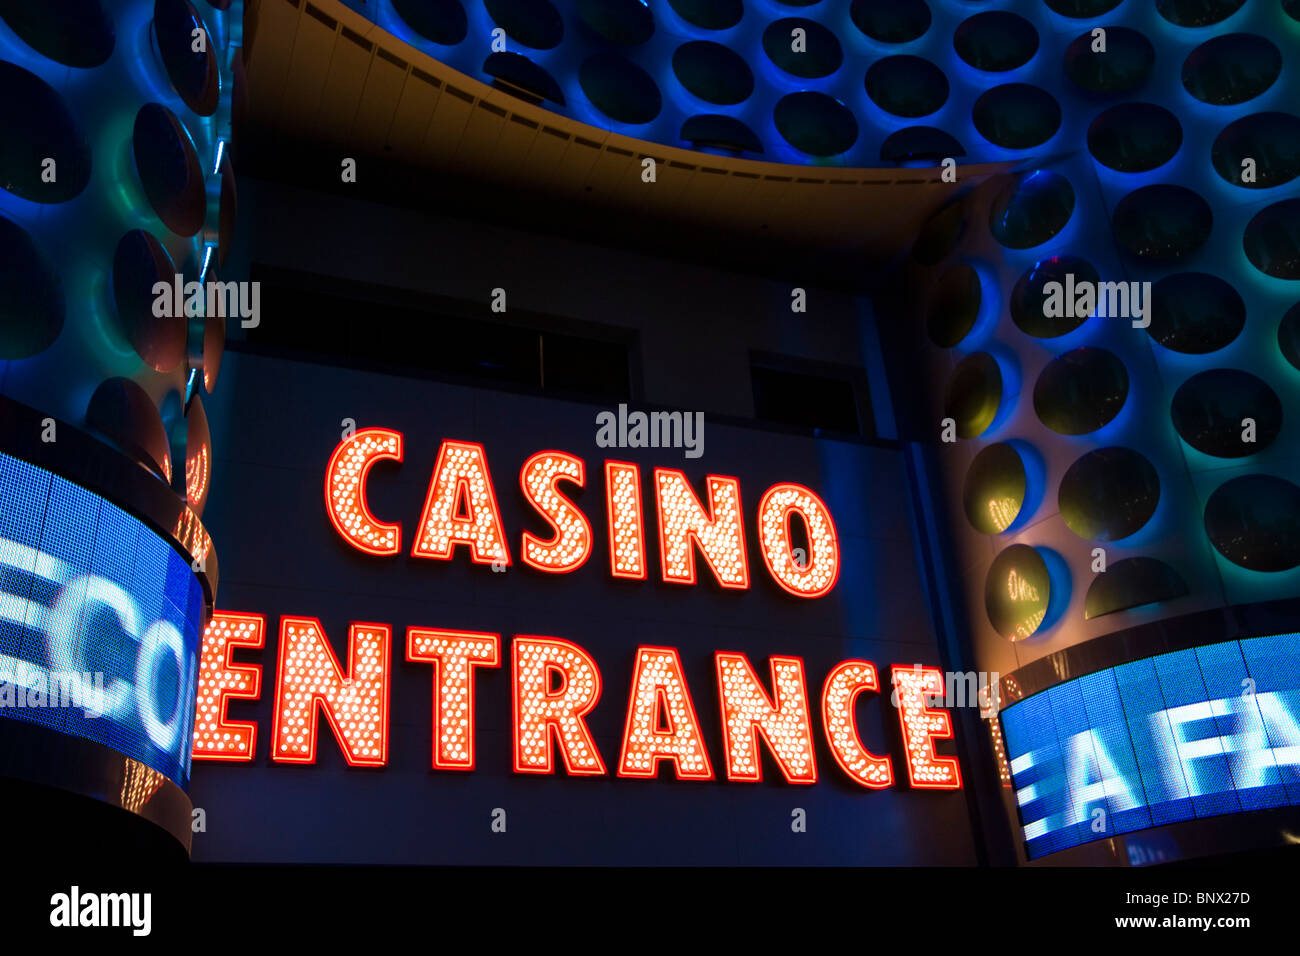 Las Vegas Sign on the strip of the syn city - Stock Image